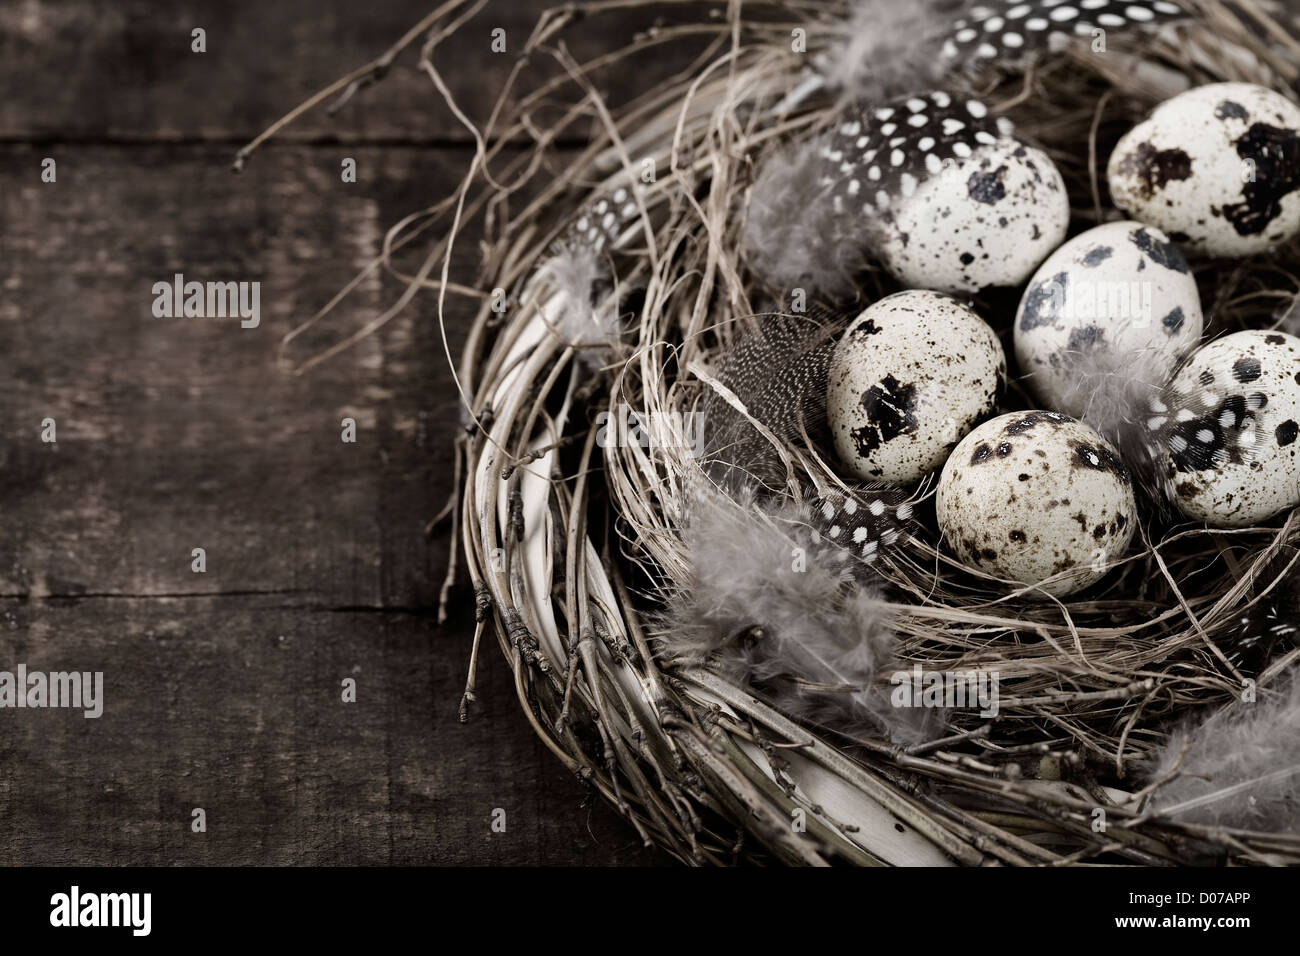 Birds nest with eggs (easter composition) - Stock Image